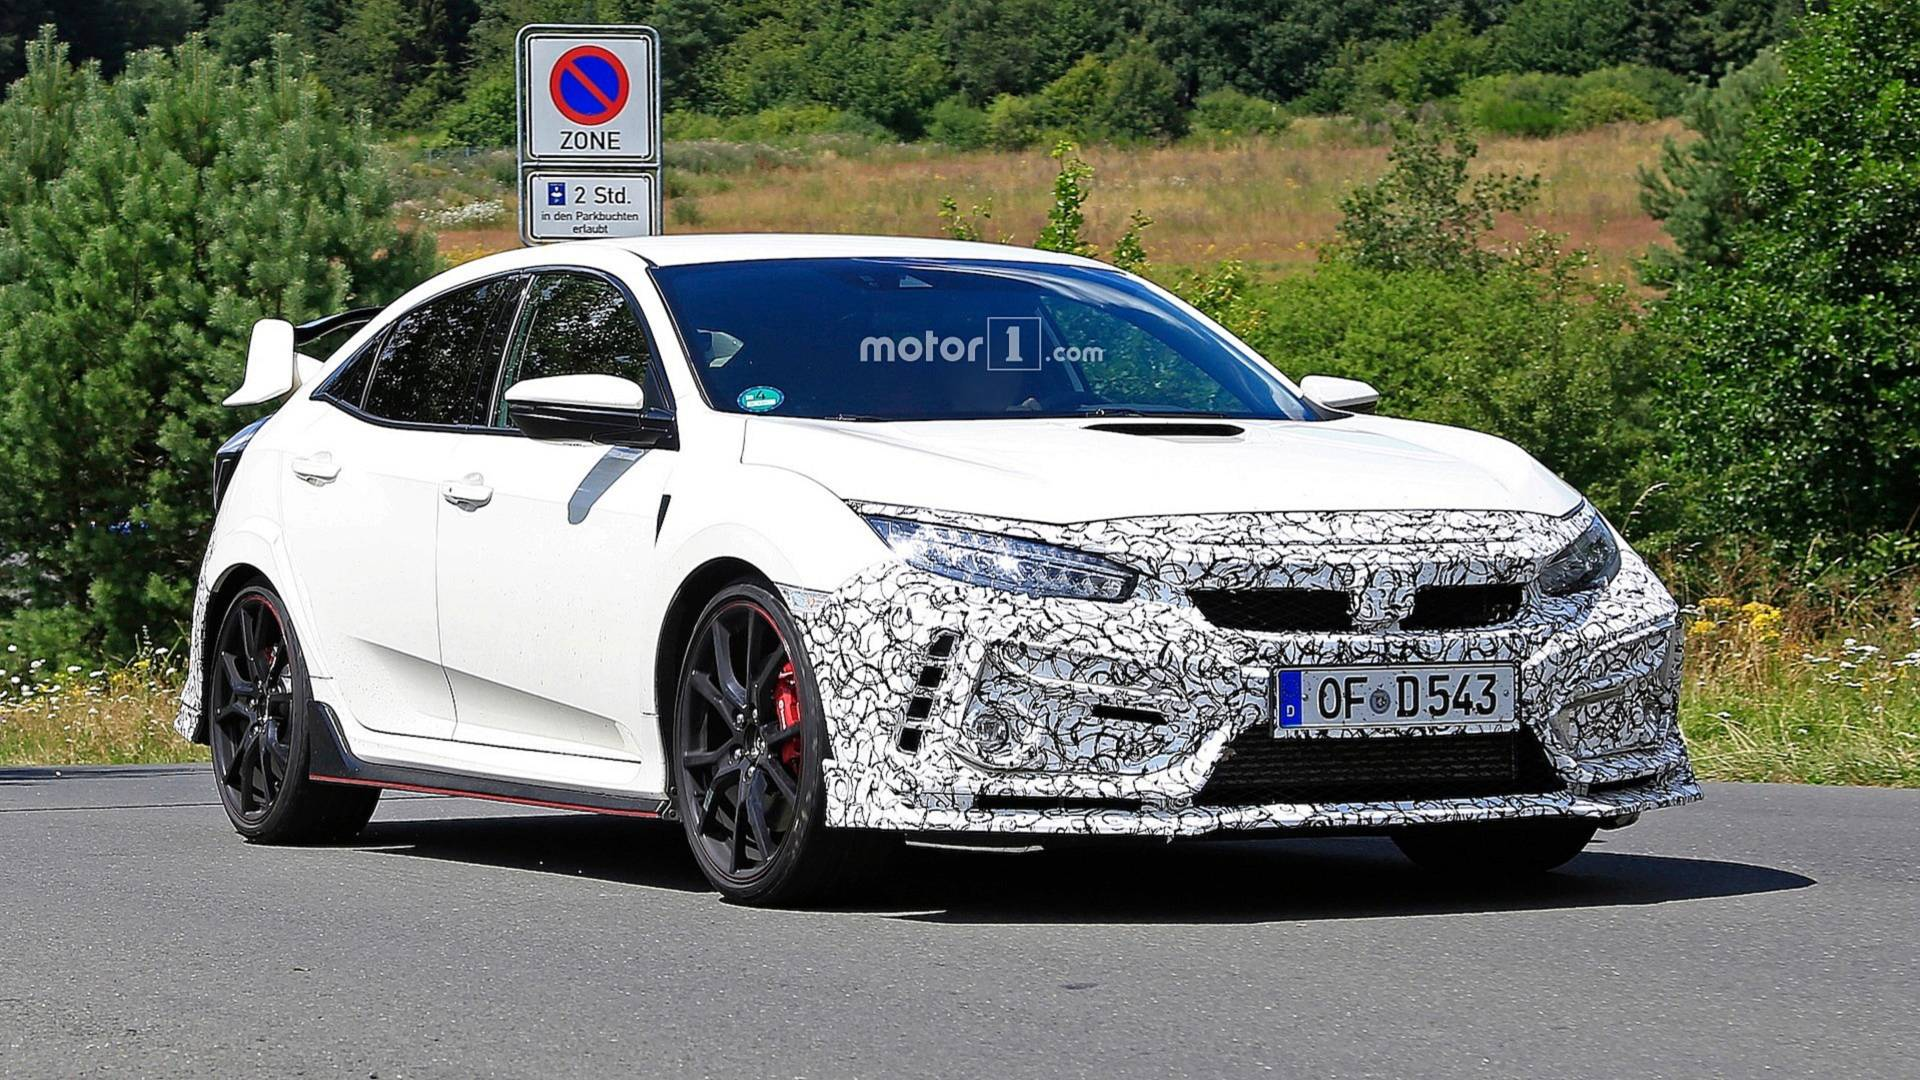 honda civic 2019 type r spy shots (7)